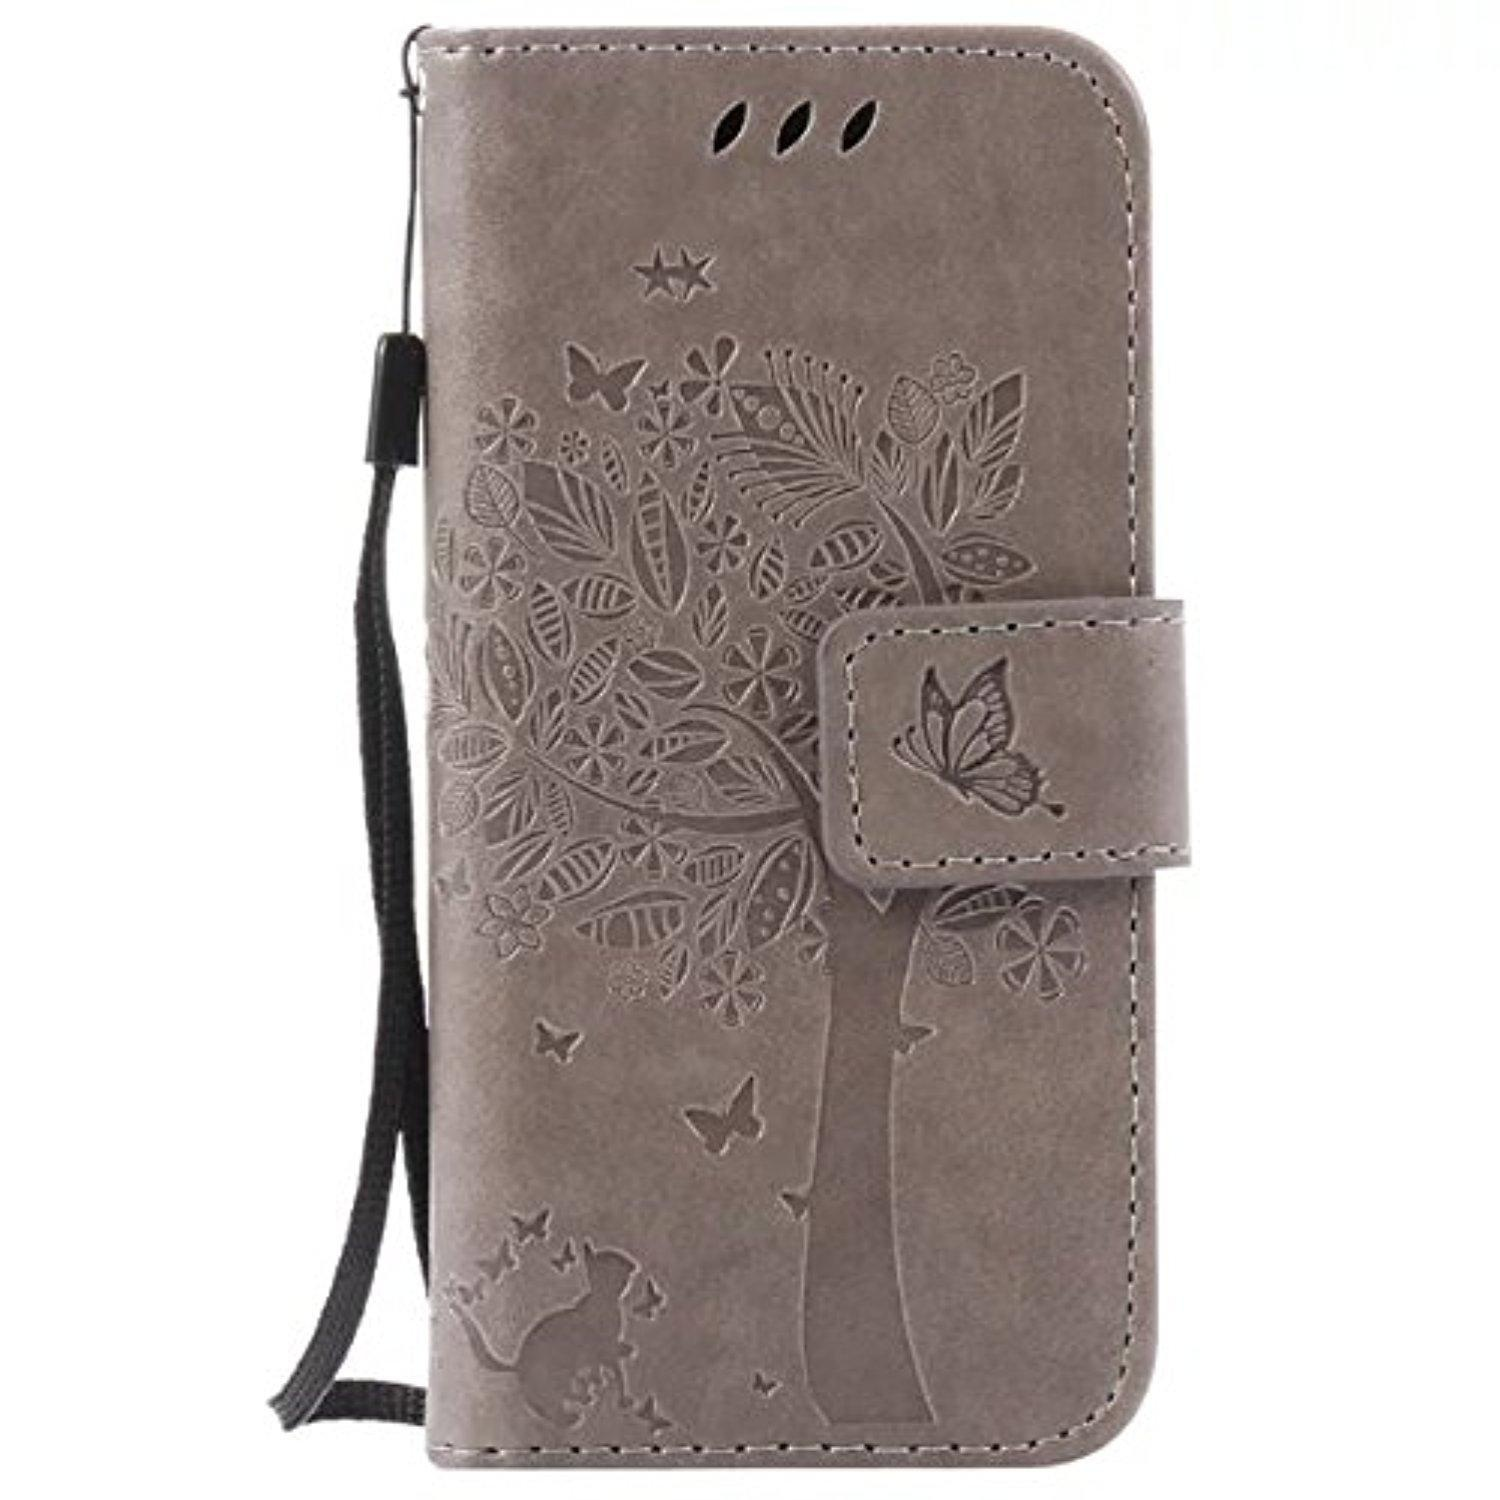 timeless design e1d7c 6d8bb Ipod Touch 6th Generation Case, Ngift [Gray] [Cats And Tree] [Wallet  Function] Pu Leather Folio Leather Stand Shell Flip Case Cover For Apple  Touch ...